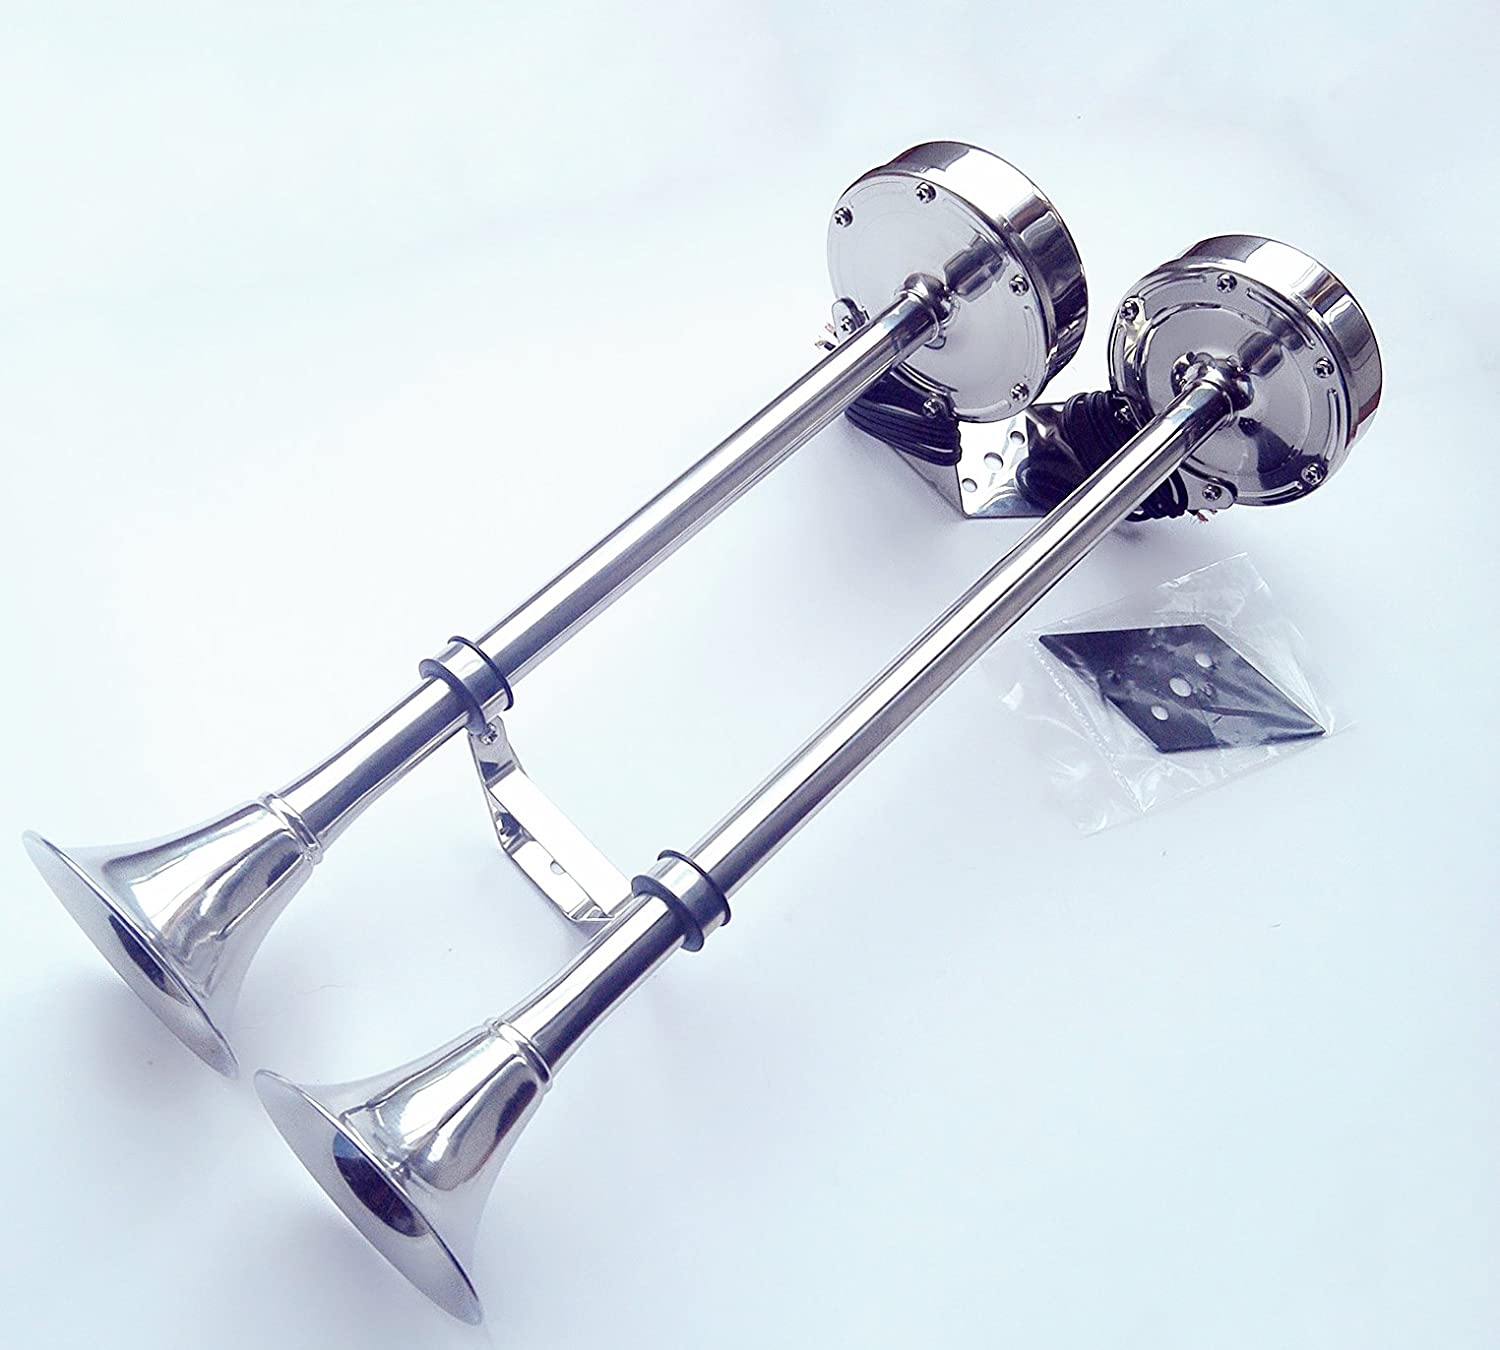 BOAT//MARINE//TRUCK//RV 12V STAINLESS STEEL DUAL TWIN TRUMPET ELECTRIC SIGNAL HORN